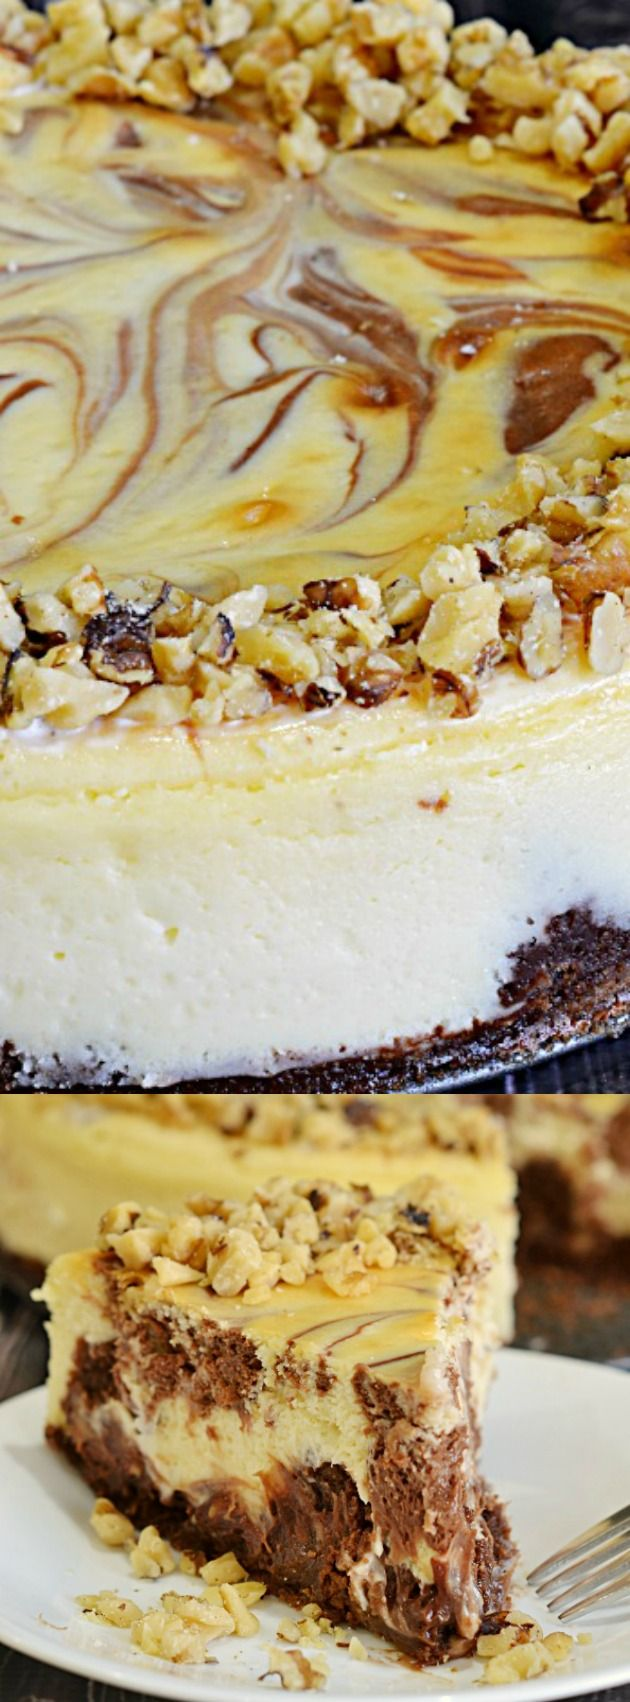 This Brownie Swirl Cheesecake from Lady Behind the Curtain is your two favorite desserts in one! It has a chewy brownie crust, layers of chocolatey brownie bits and dollops of dark chocolate swirls!